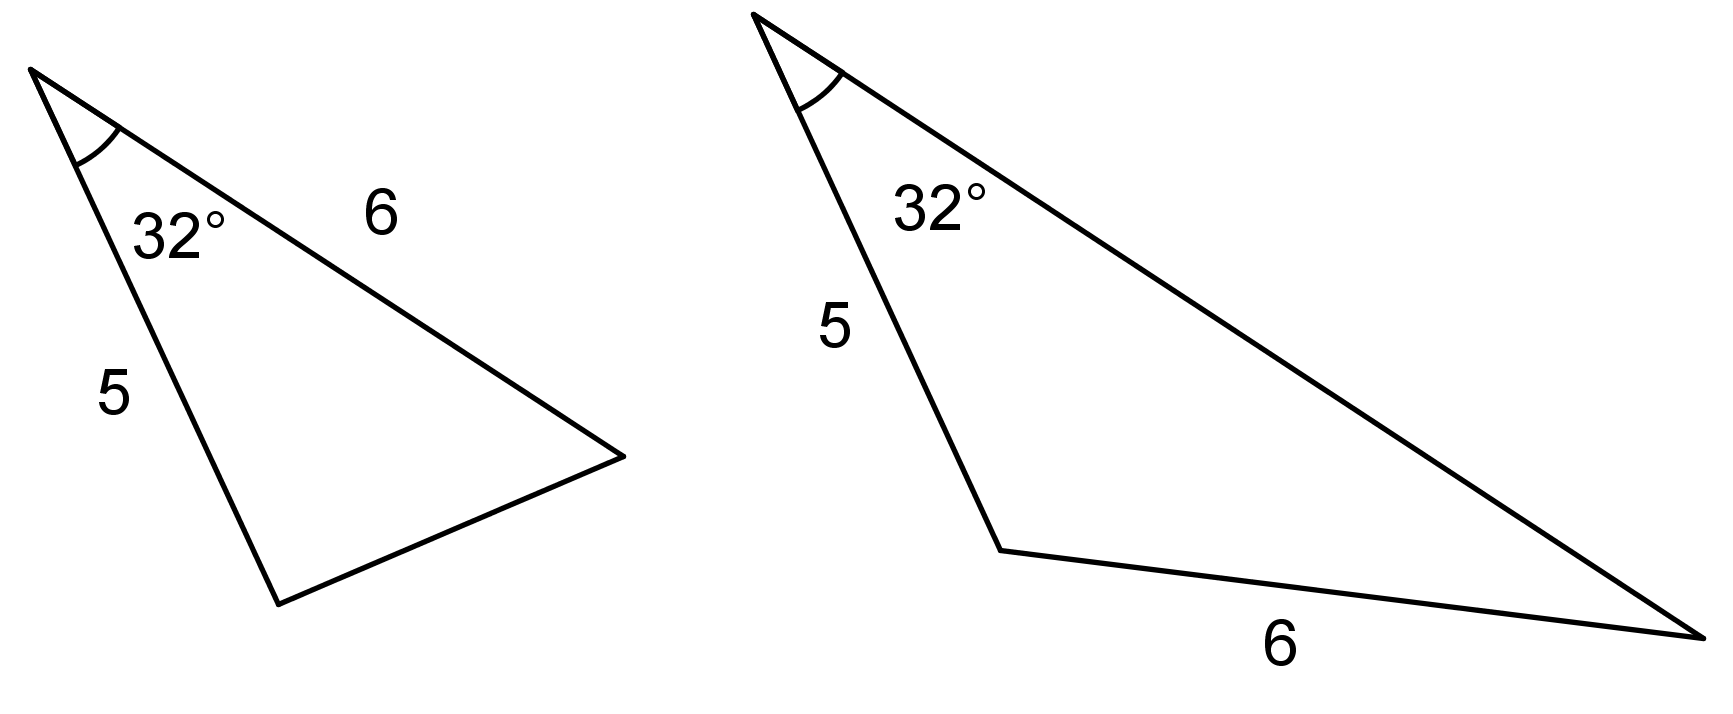 Two triangles each with two given side lengths labeled 5 and 6, and an angle labeled 32 degrees. For the triangle on the left, the angle labeled 32 degrees is between the adjacent side lengths 5 and 6. The triangle on the right has the angle labeled 32 degrees between the side length labeled 5 and the third side of the triangle that is not labeled.